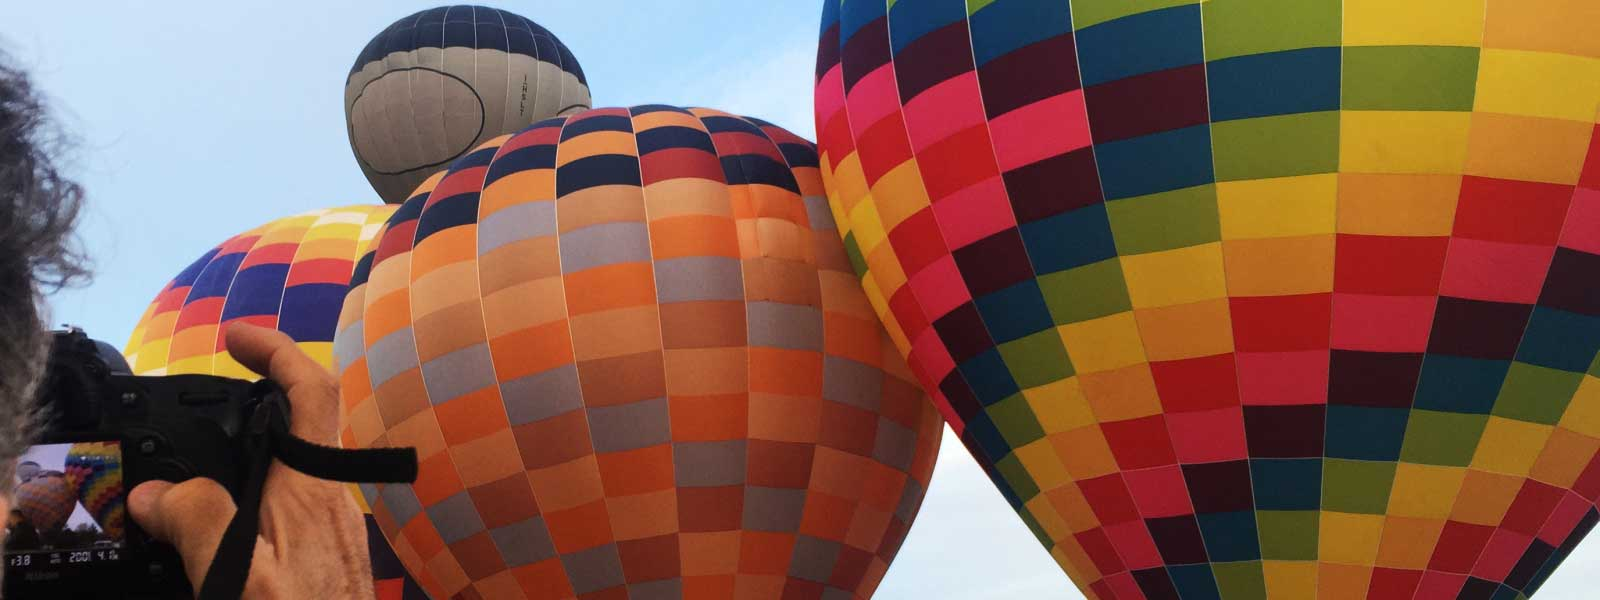 colourful-balloons-at-takeoff-tuscany-italy